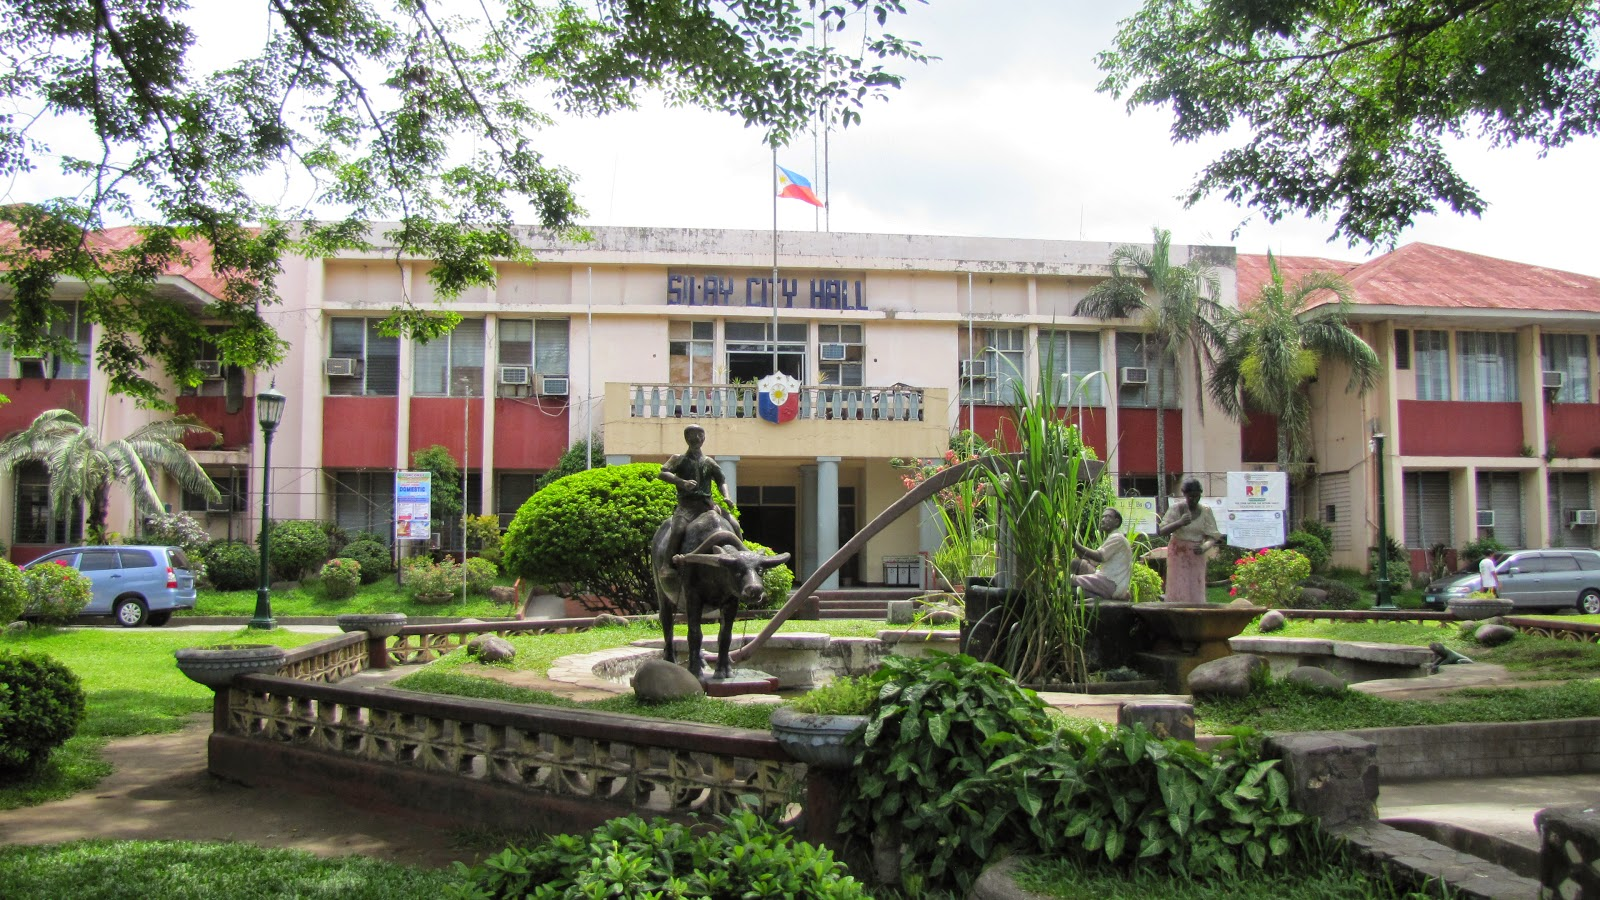 Silay City Hall, Silay City, Bacolod, FTW! Travels